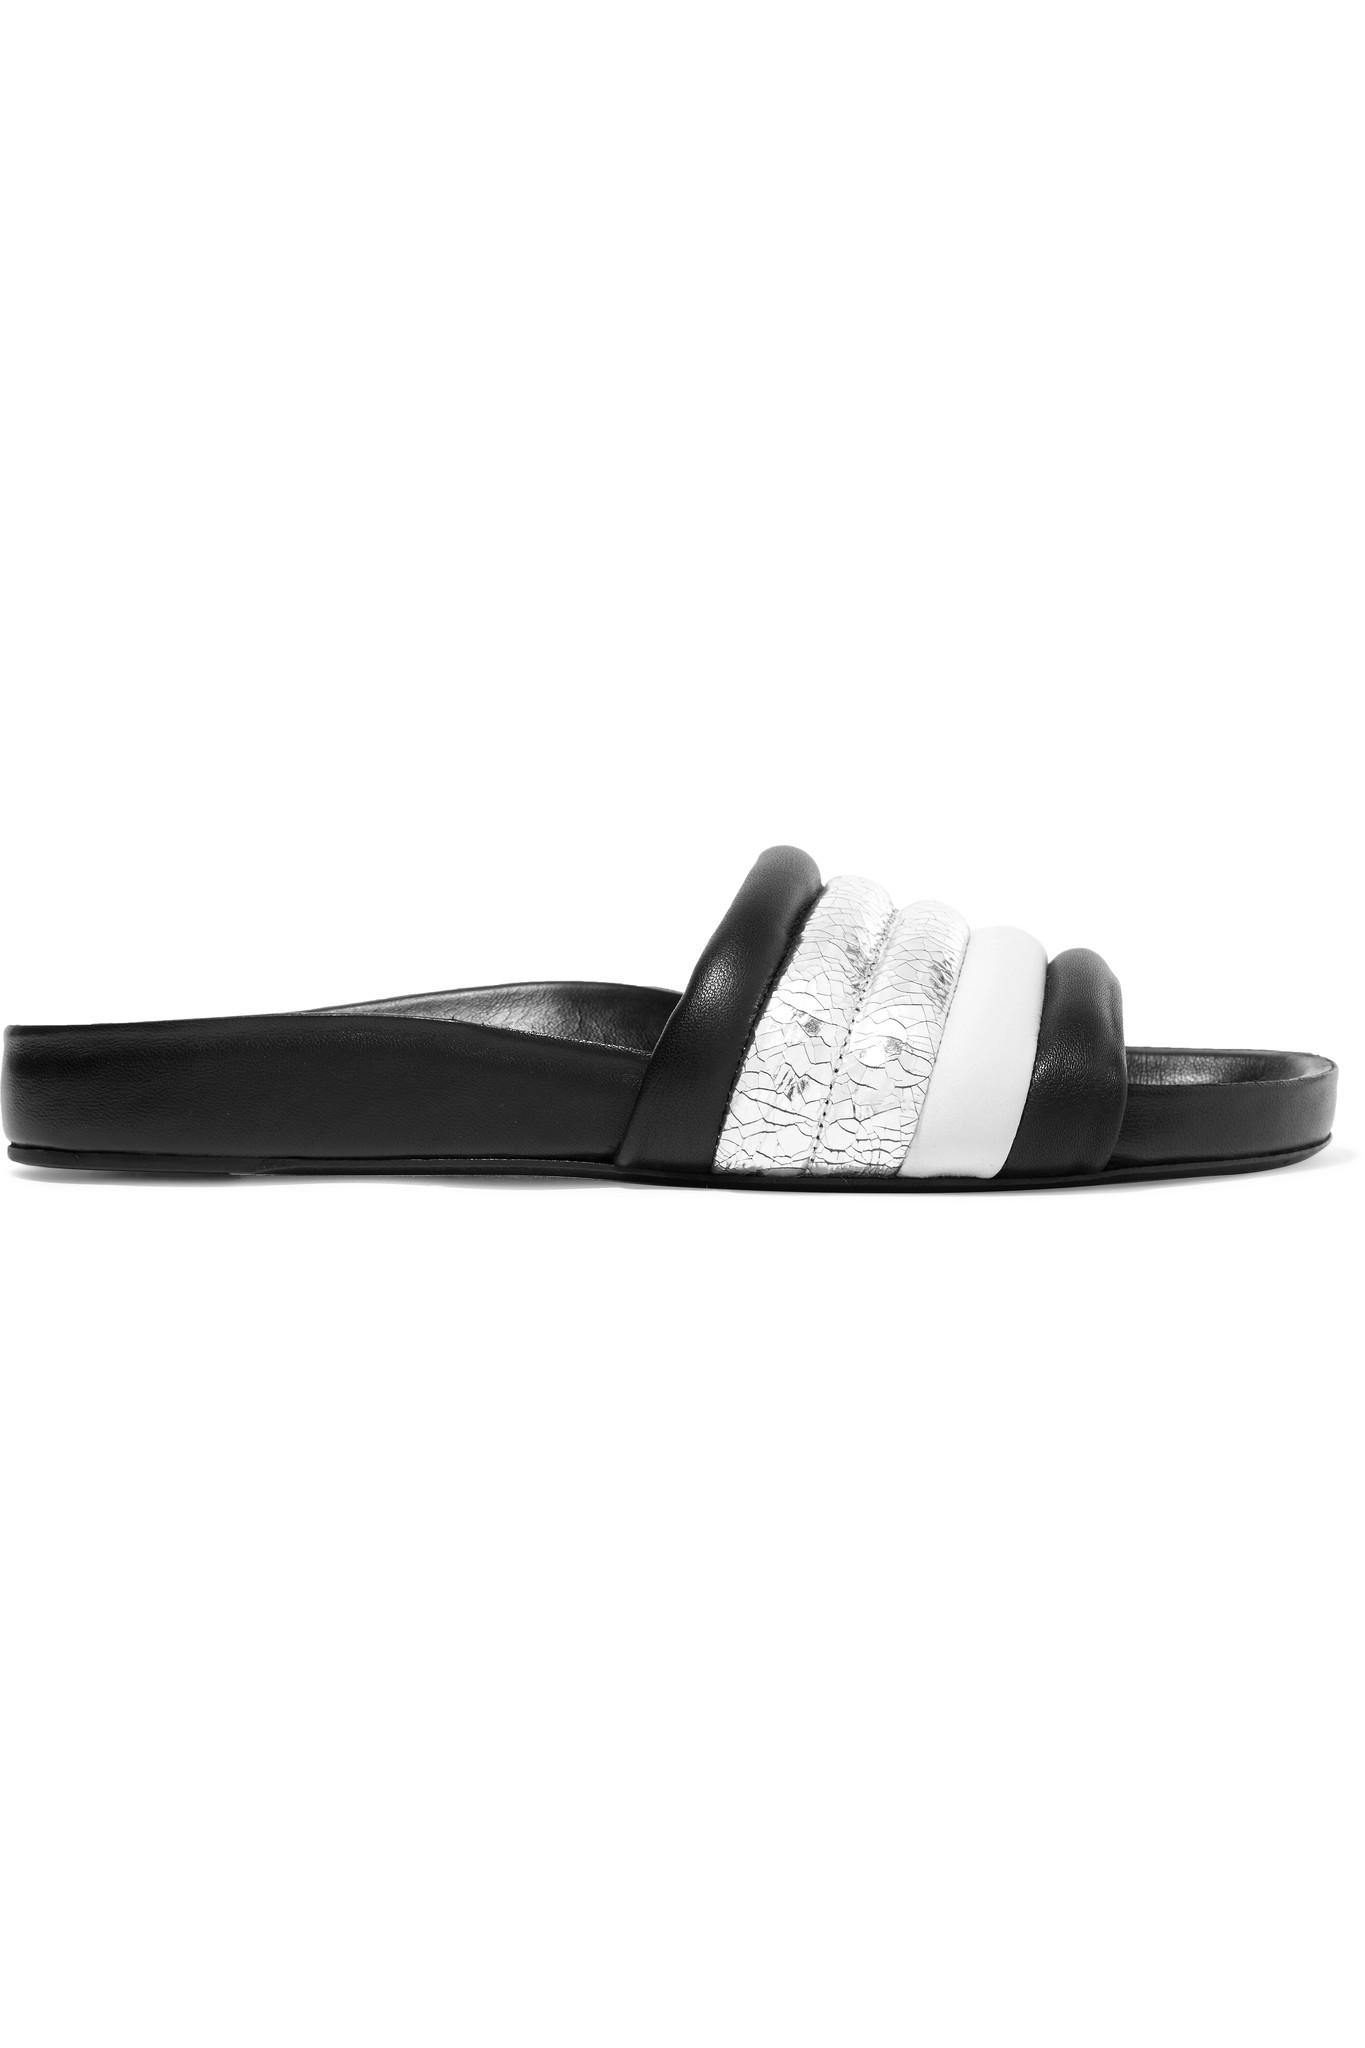 New Sale Online Free Shipping Low Price Fee Shipping Isabel Marant Hellea Smooth And Cracked Mirrored-leather Slides u3lo1